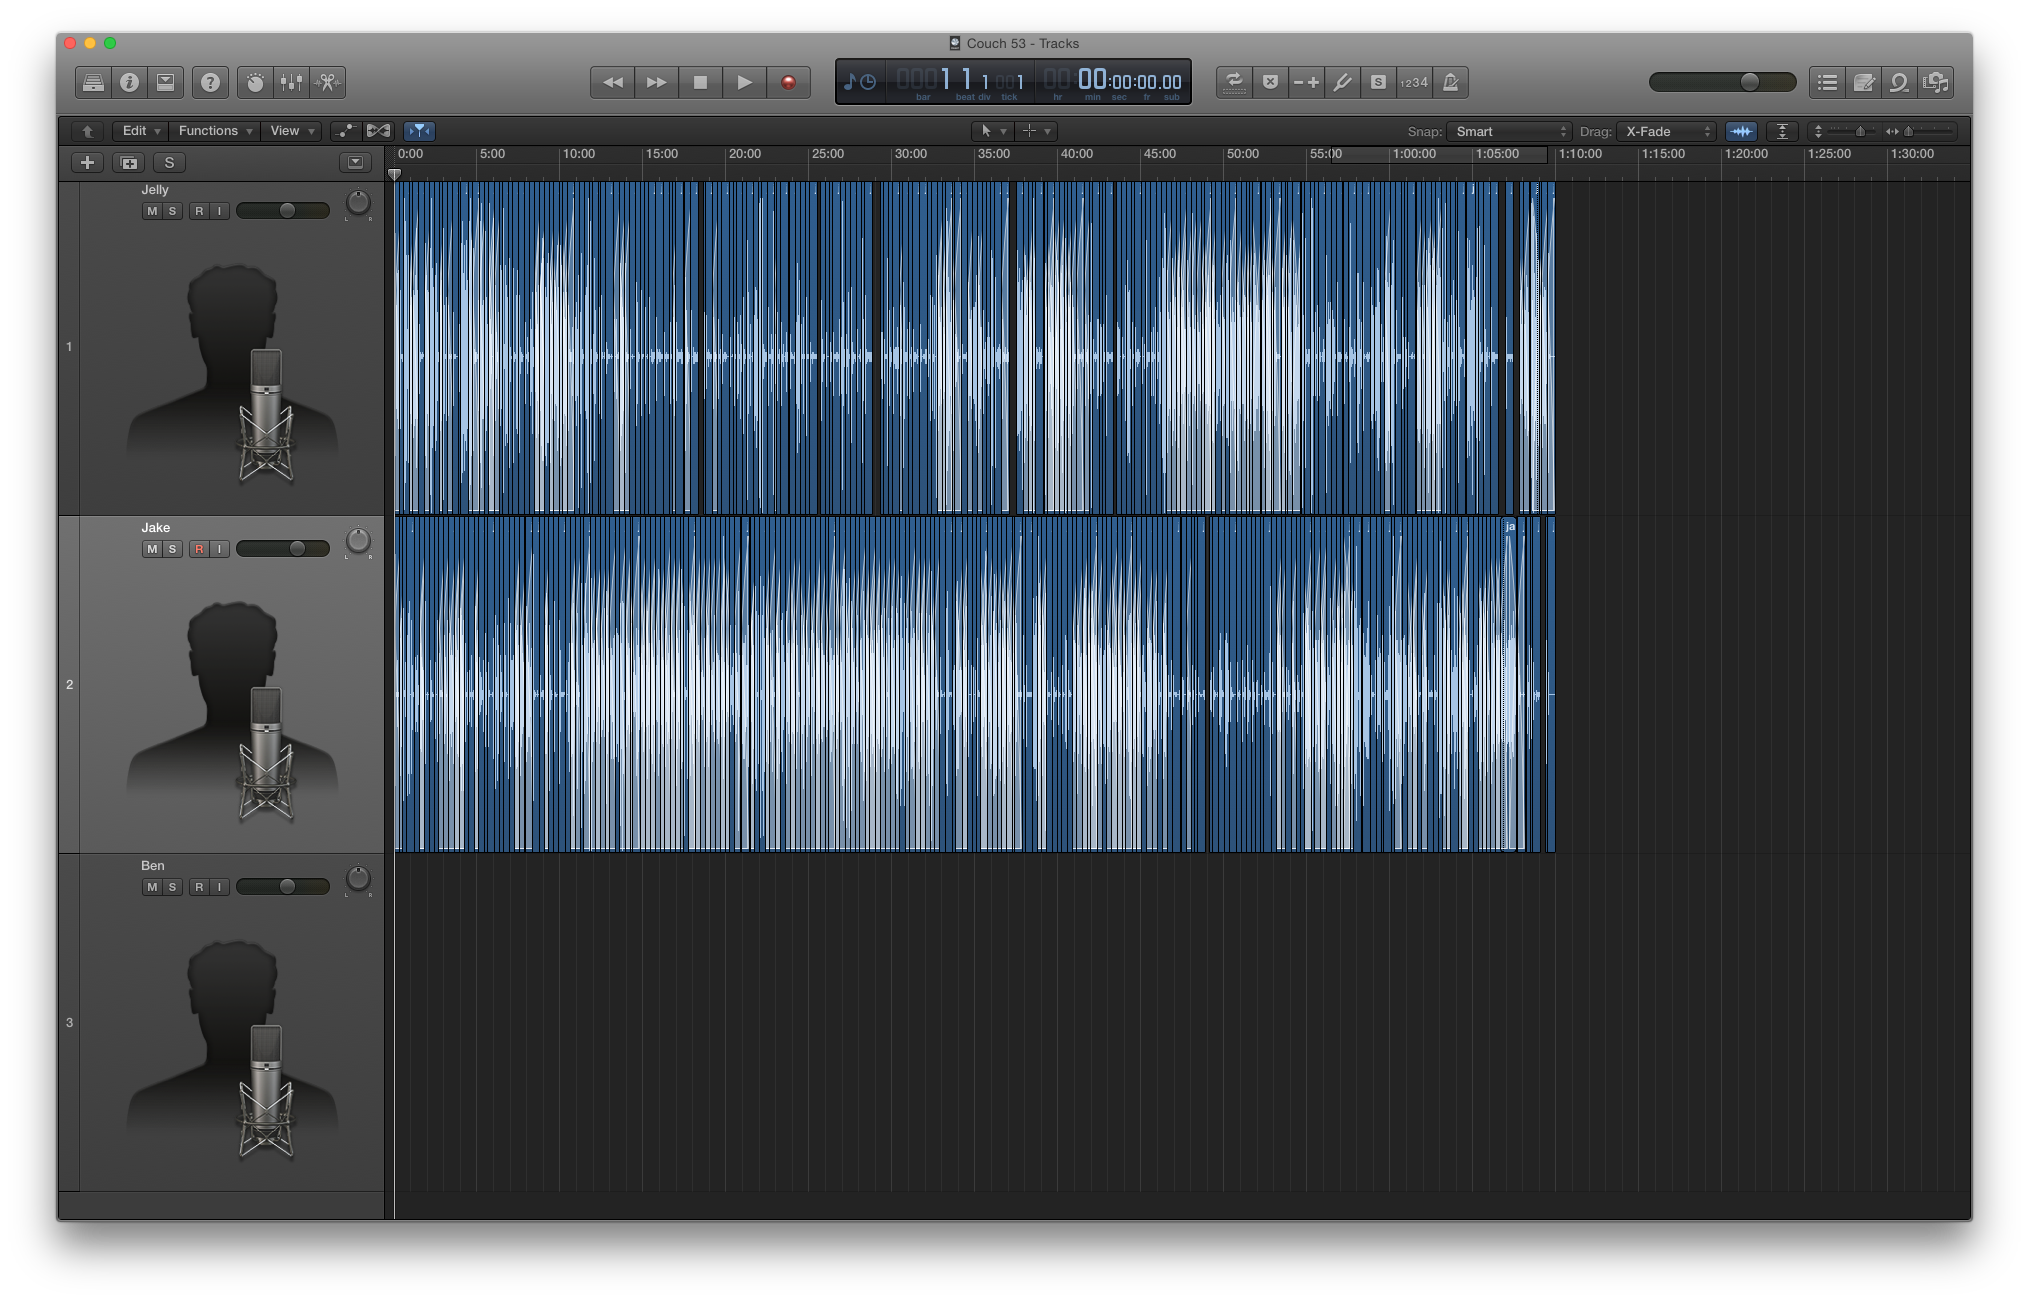 The final version of Mobile Couch 53 in Logic Pro X.